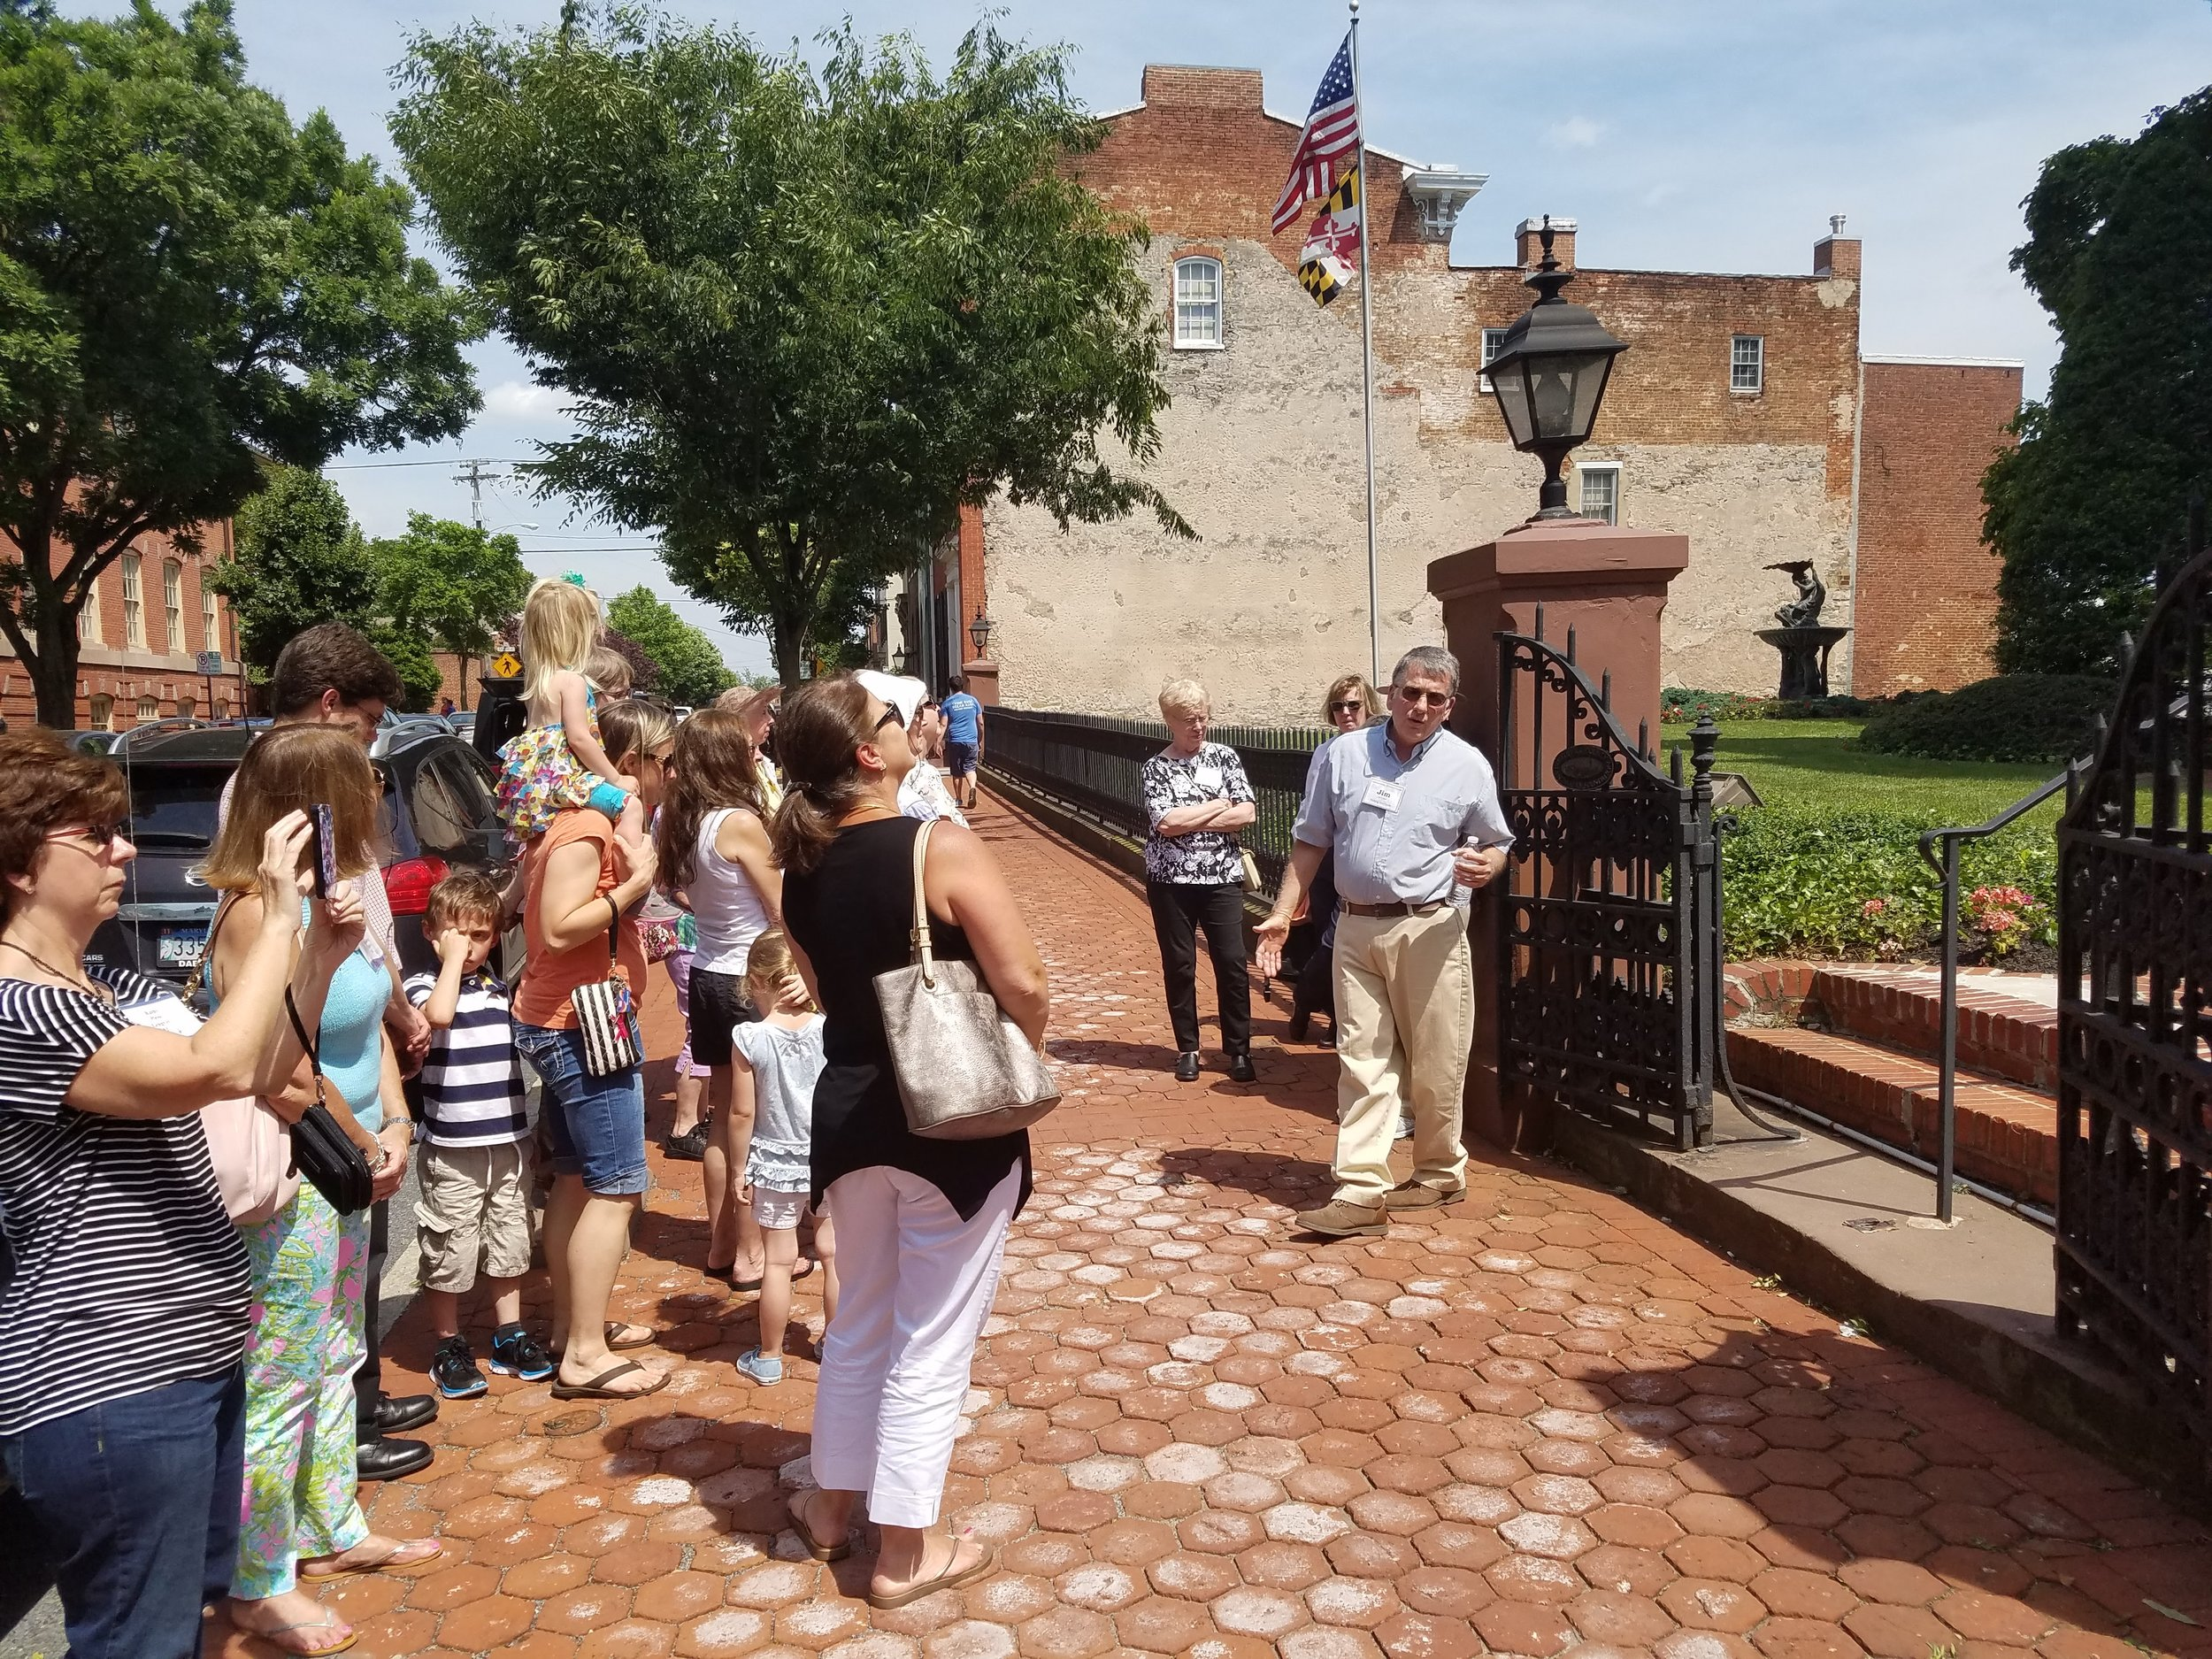 Walking Tour of Downtown Frederick, stopped in front of Keeney & Basford, the former Trail Mansion